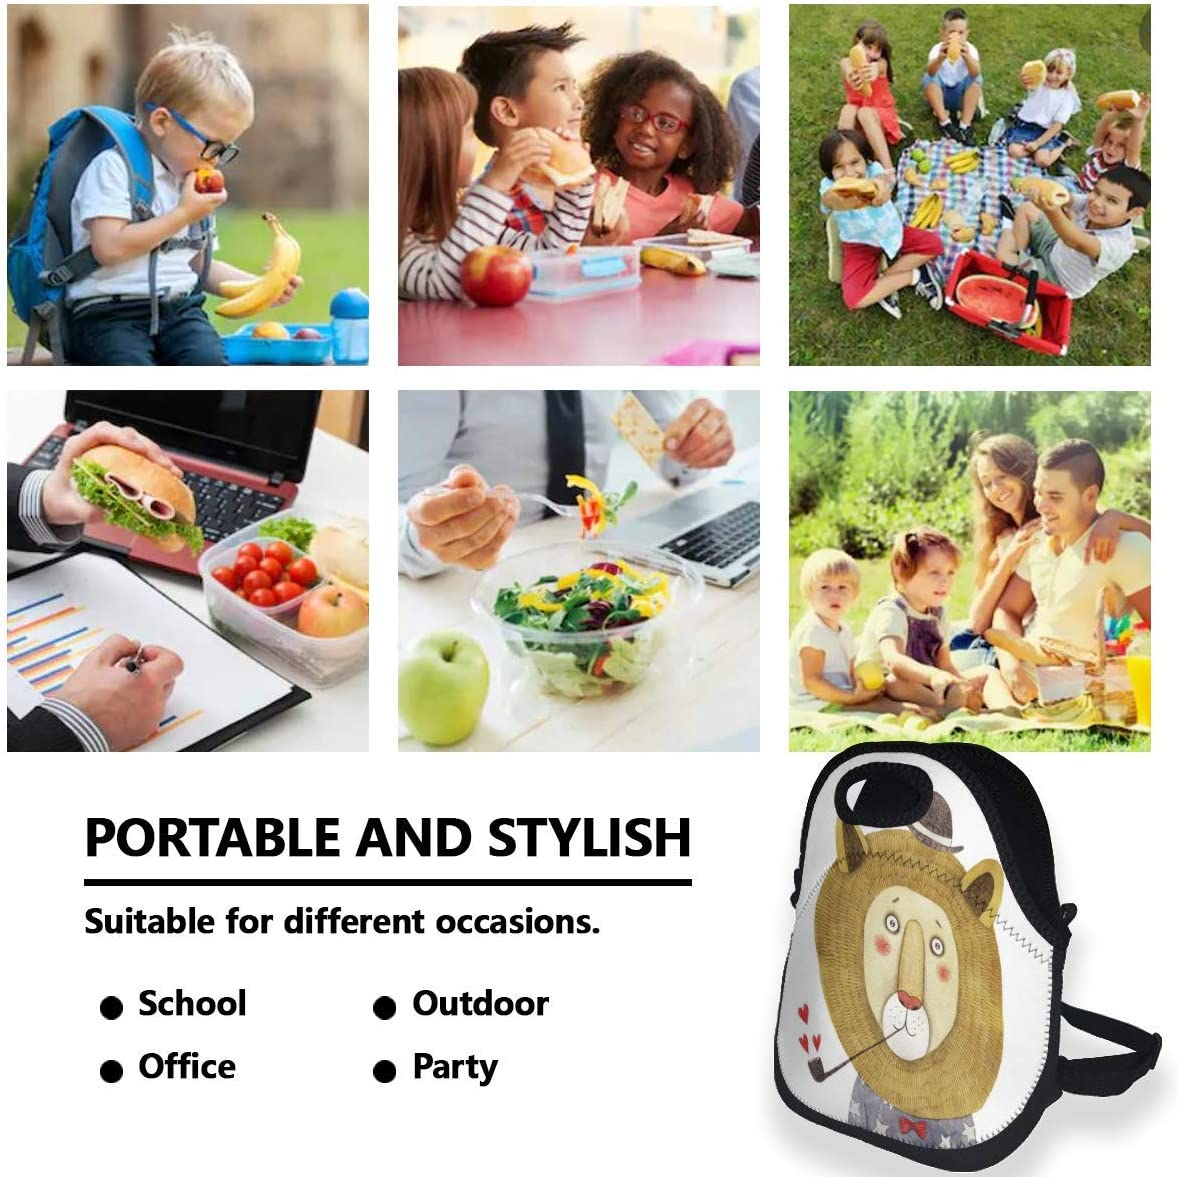 Portable Insulated Lunch Bags for Women Men Kids Girls, Dumb Lion Soft Neoprene Lunch Tote Bag, Lightweight Reusable Lunch Box for Work/Office/School/Outdoor/Travel/Picnic and Mom bag